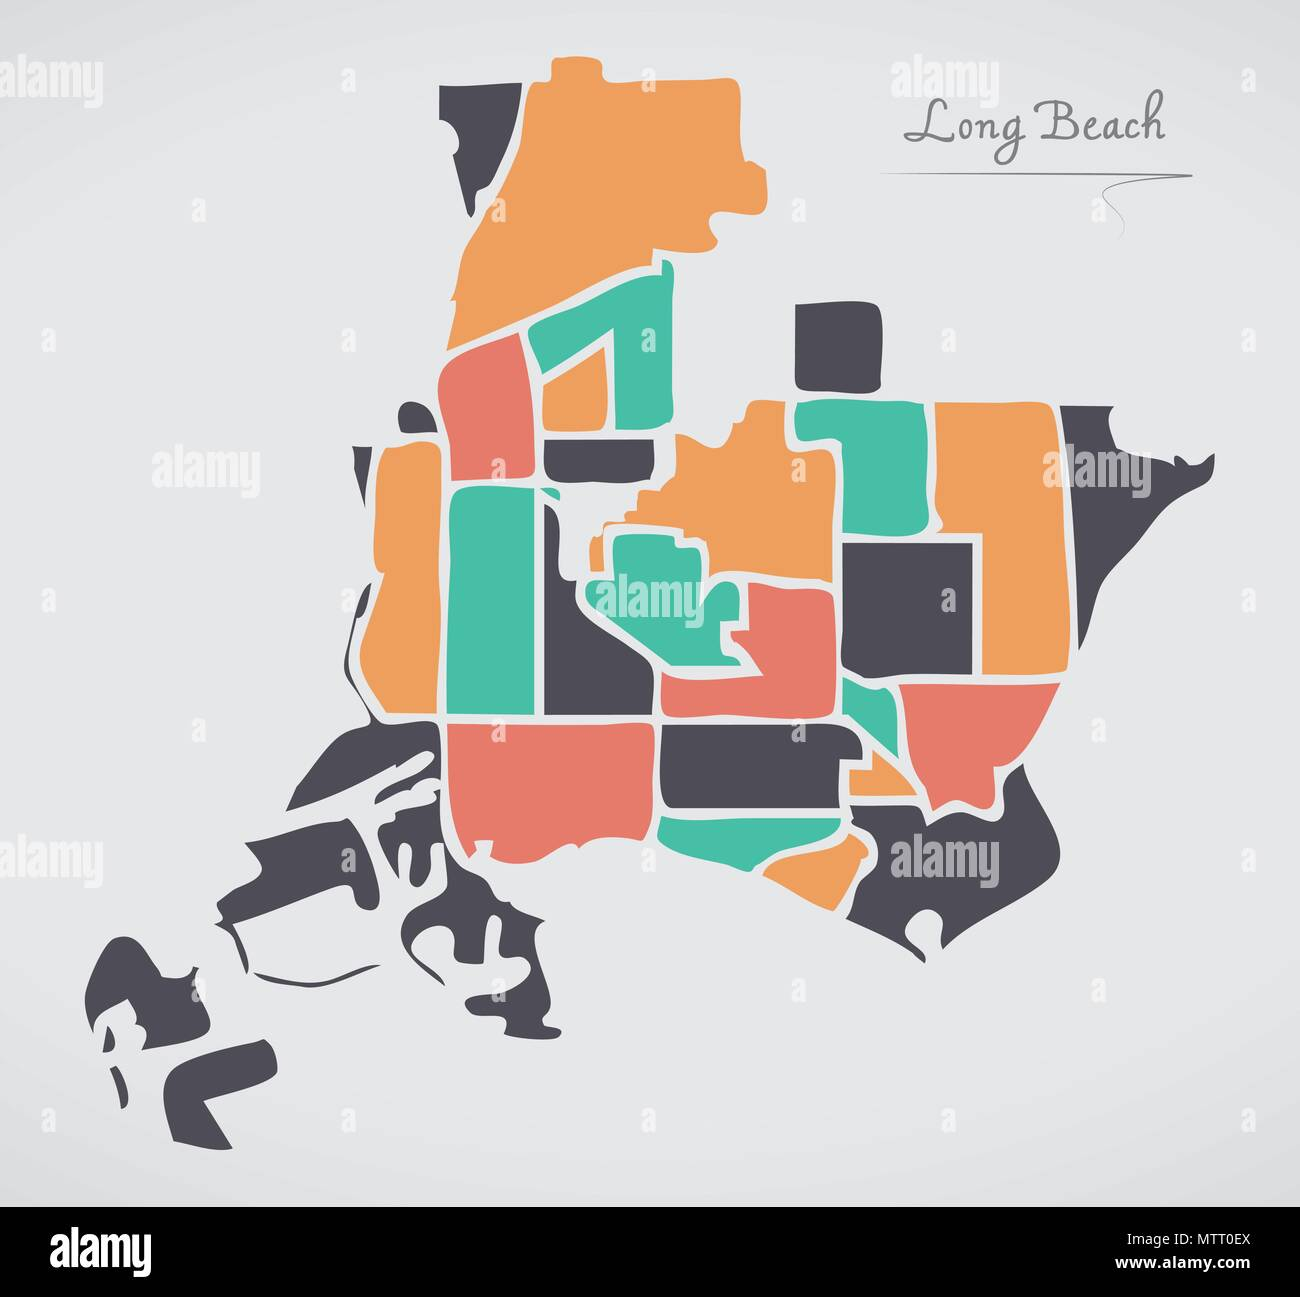 Long Beach California Map with neighborhoods and modern round shapes ...